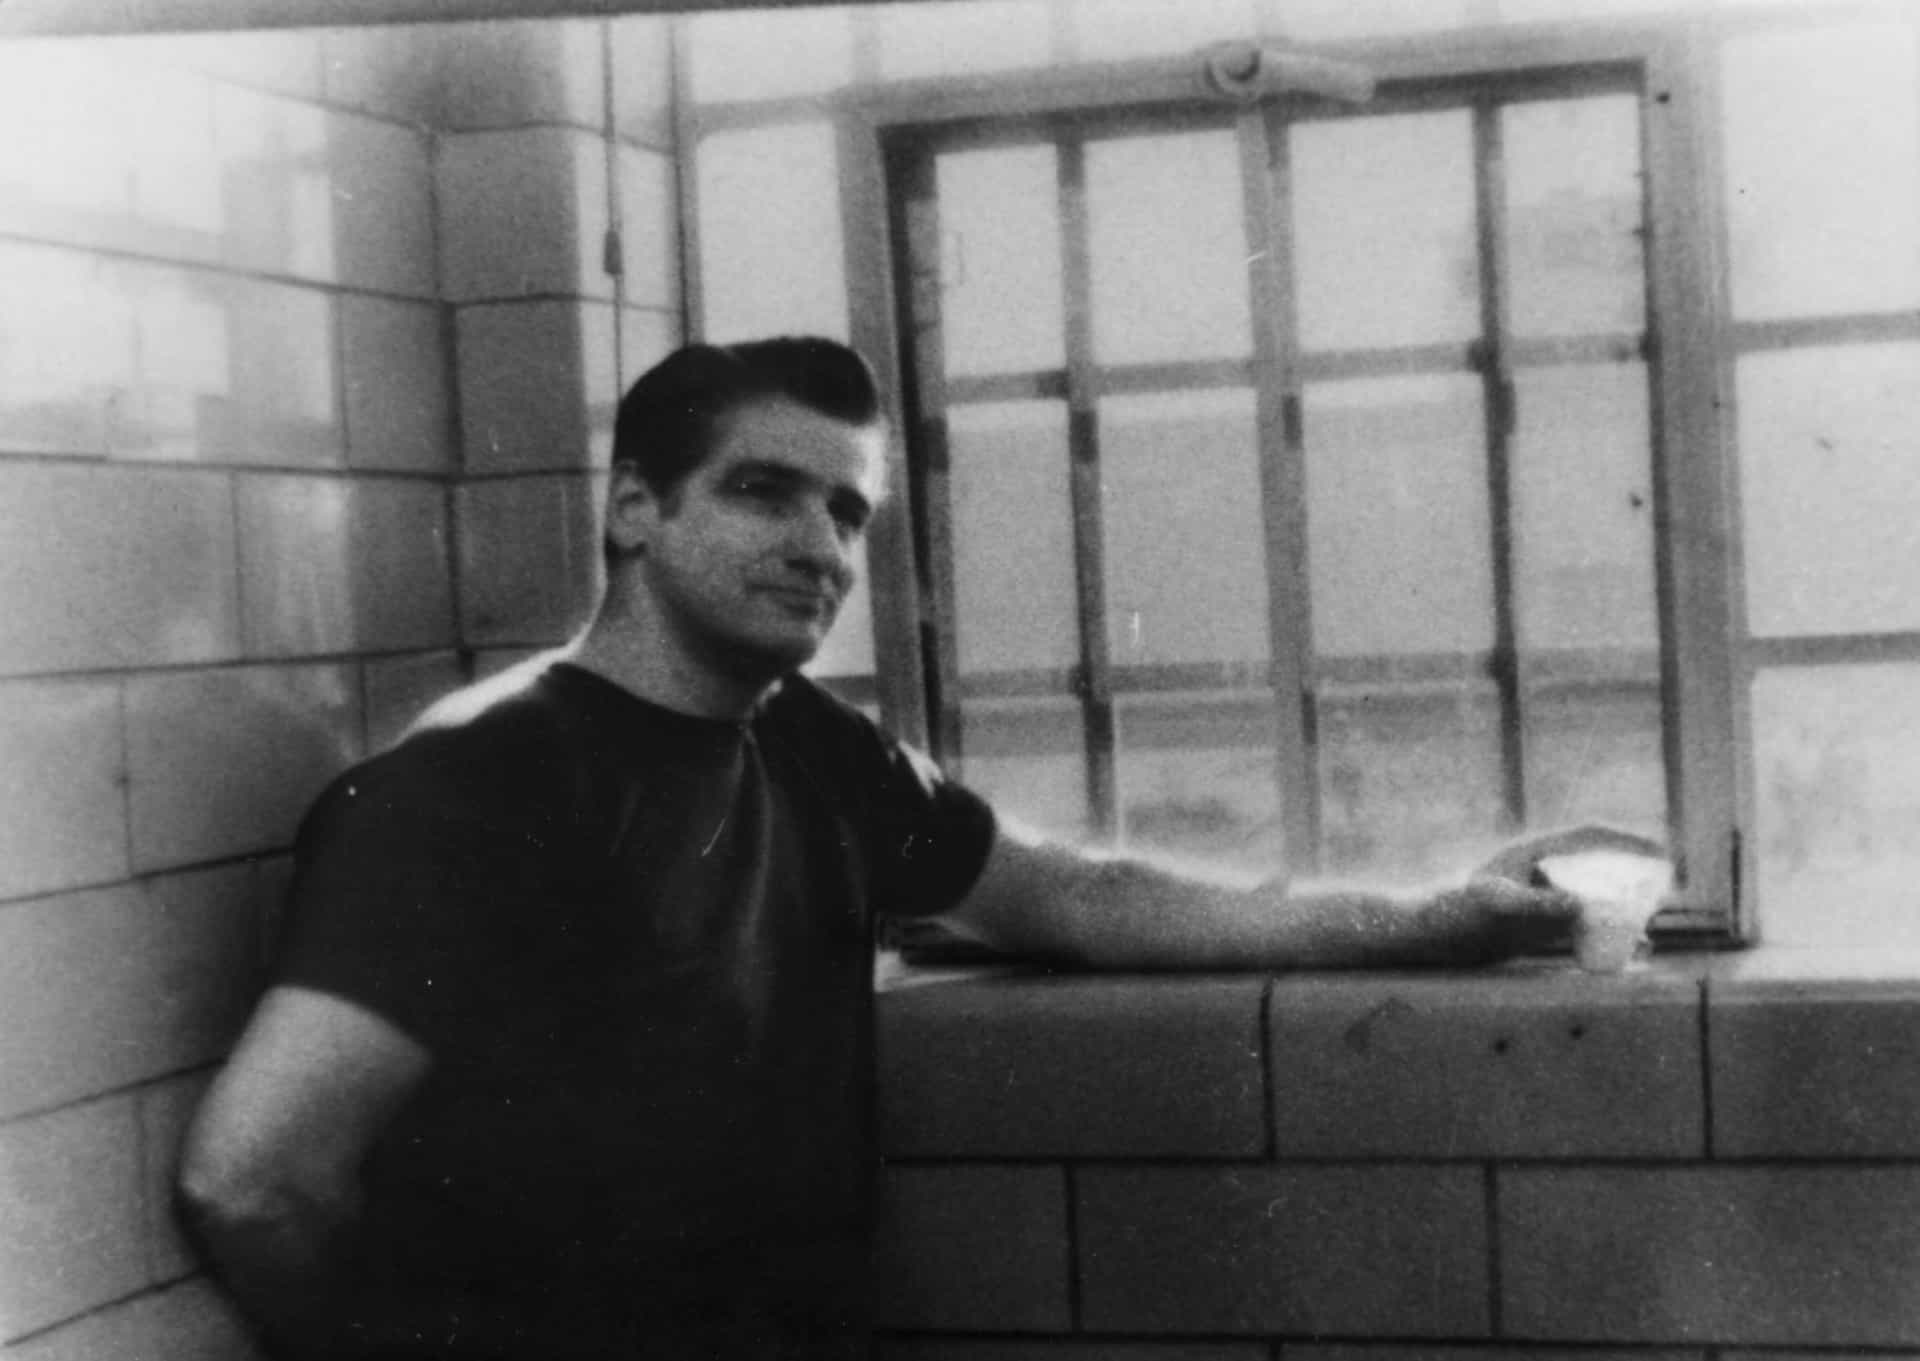 Star signs of the world's most notorious serial killers